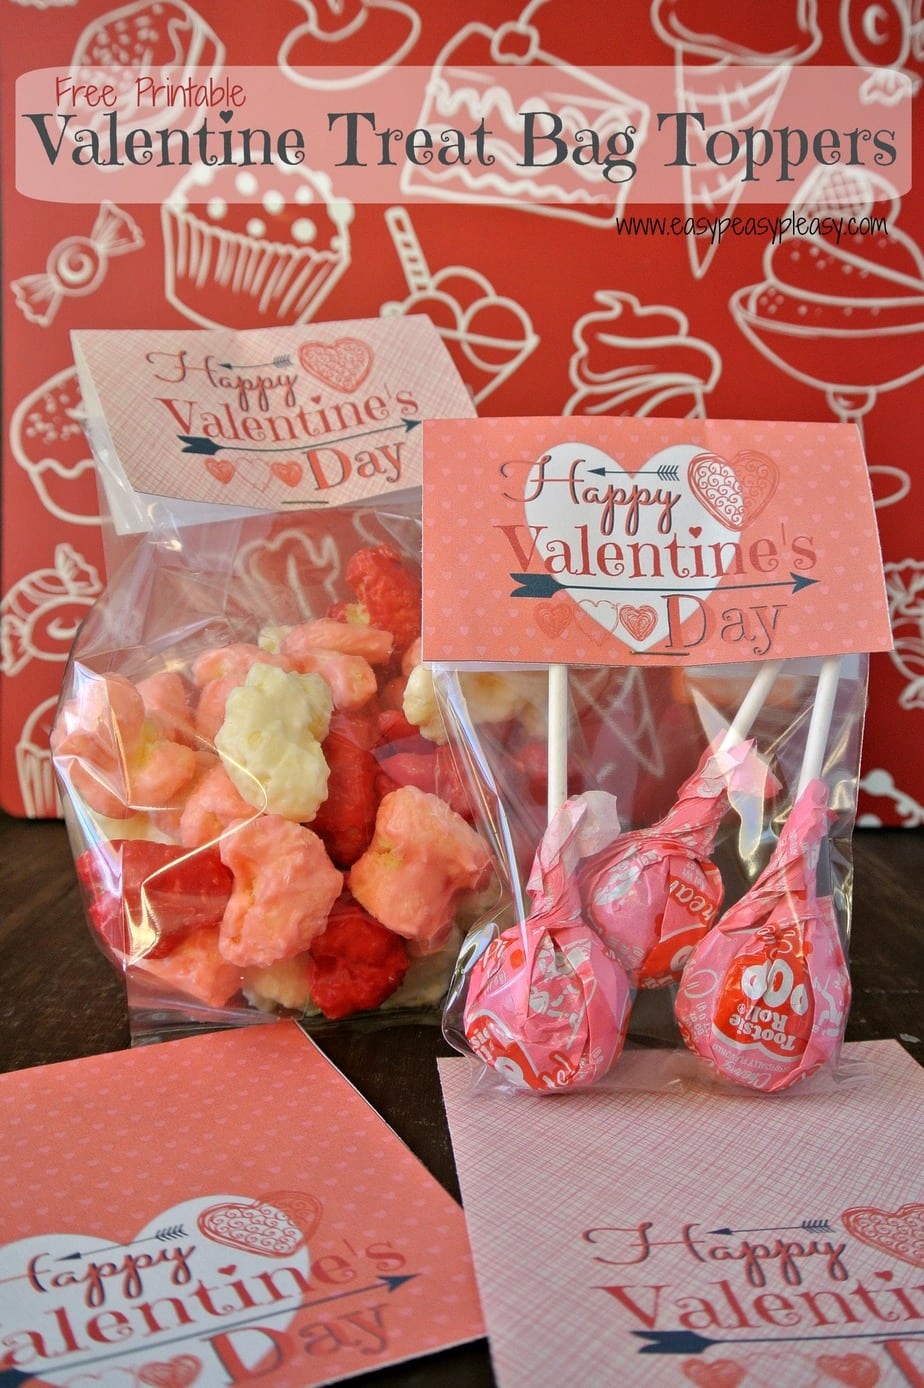 I/'m Wild About You Valentine/'s Day Treat Bag Toppers Printable Valentine Wild About You Treat Bag Toppers Valentine/'s Day Treat Bag Topper